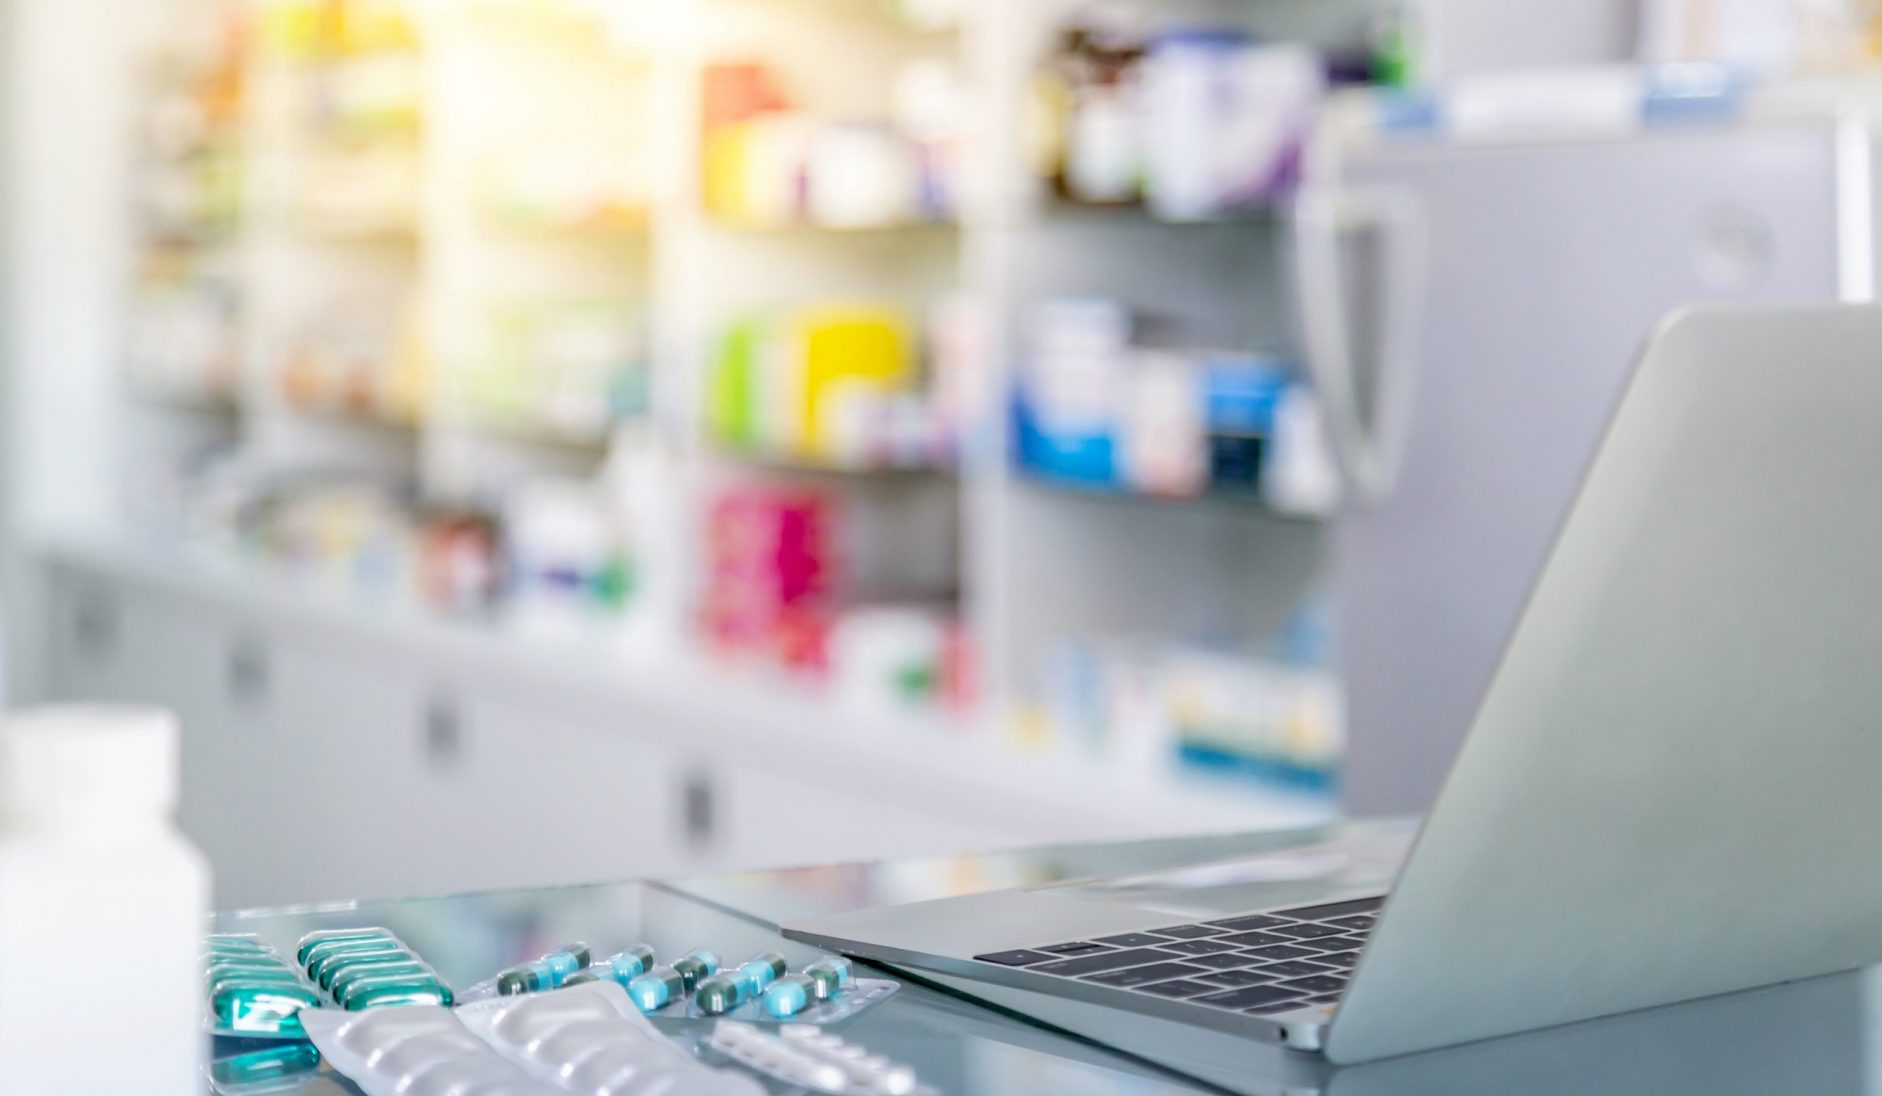 Medicine And Computer On Payment Counter With Blurred Medicines Shelves Background. Healthcare, Medical And Pharmacy Concept.